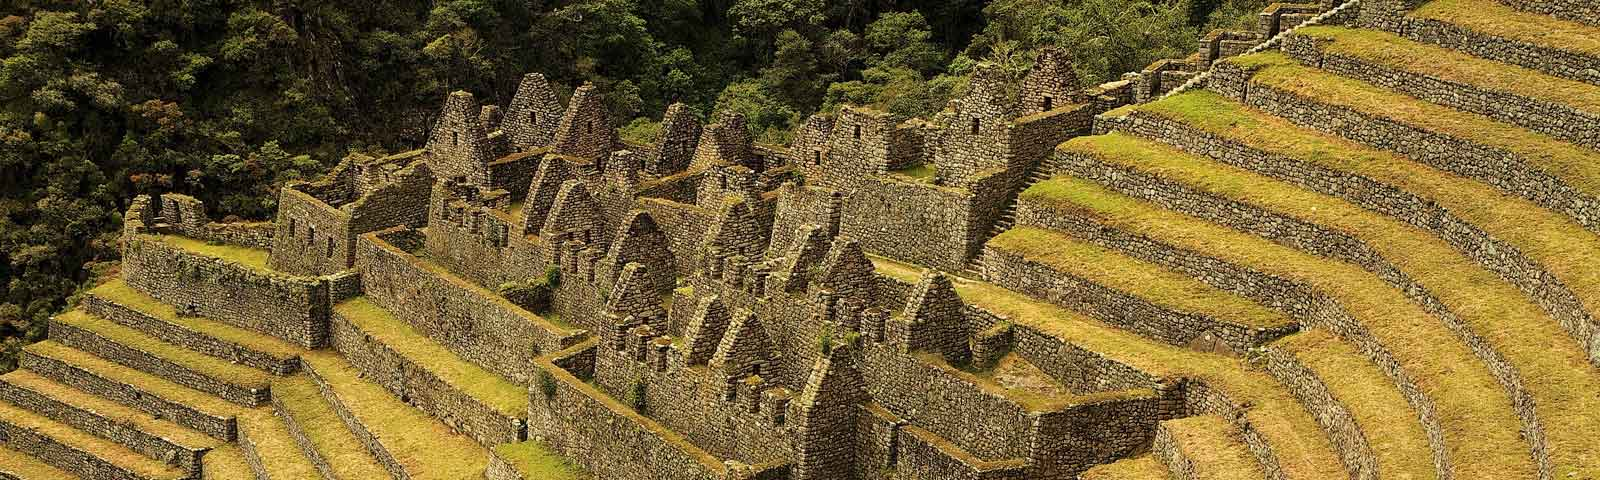 INCA TRAIL TOUR TO MACHU PICCHU  02 DAYS